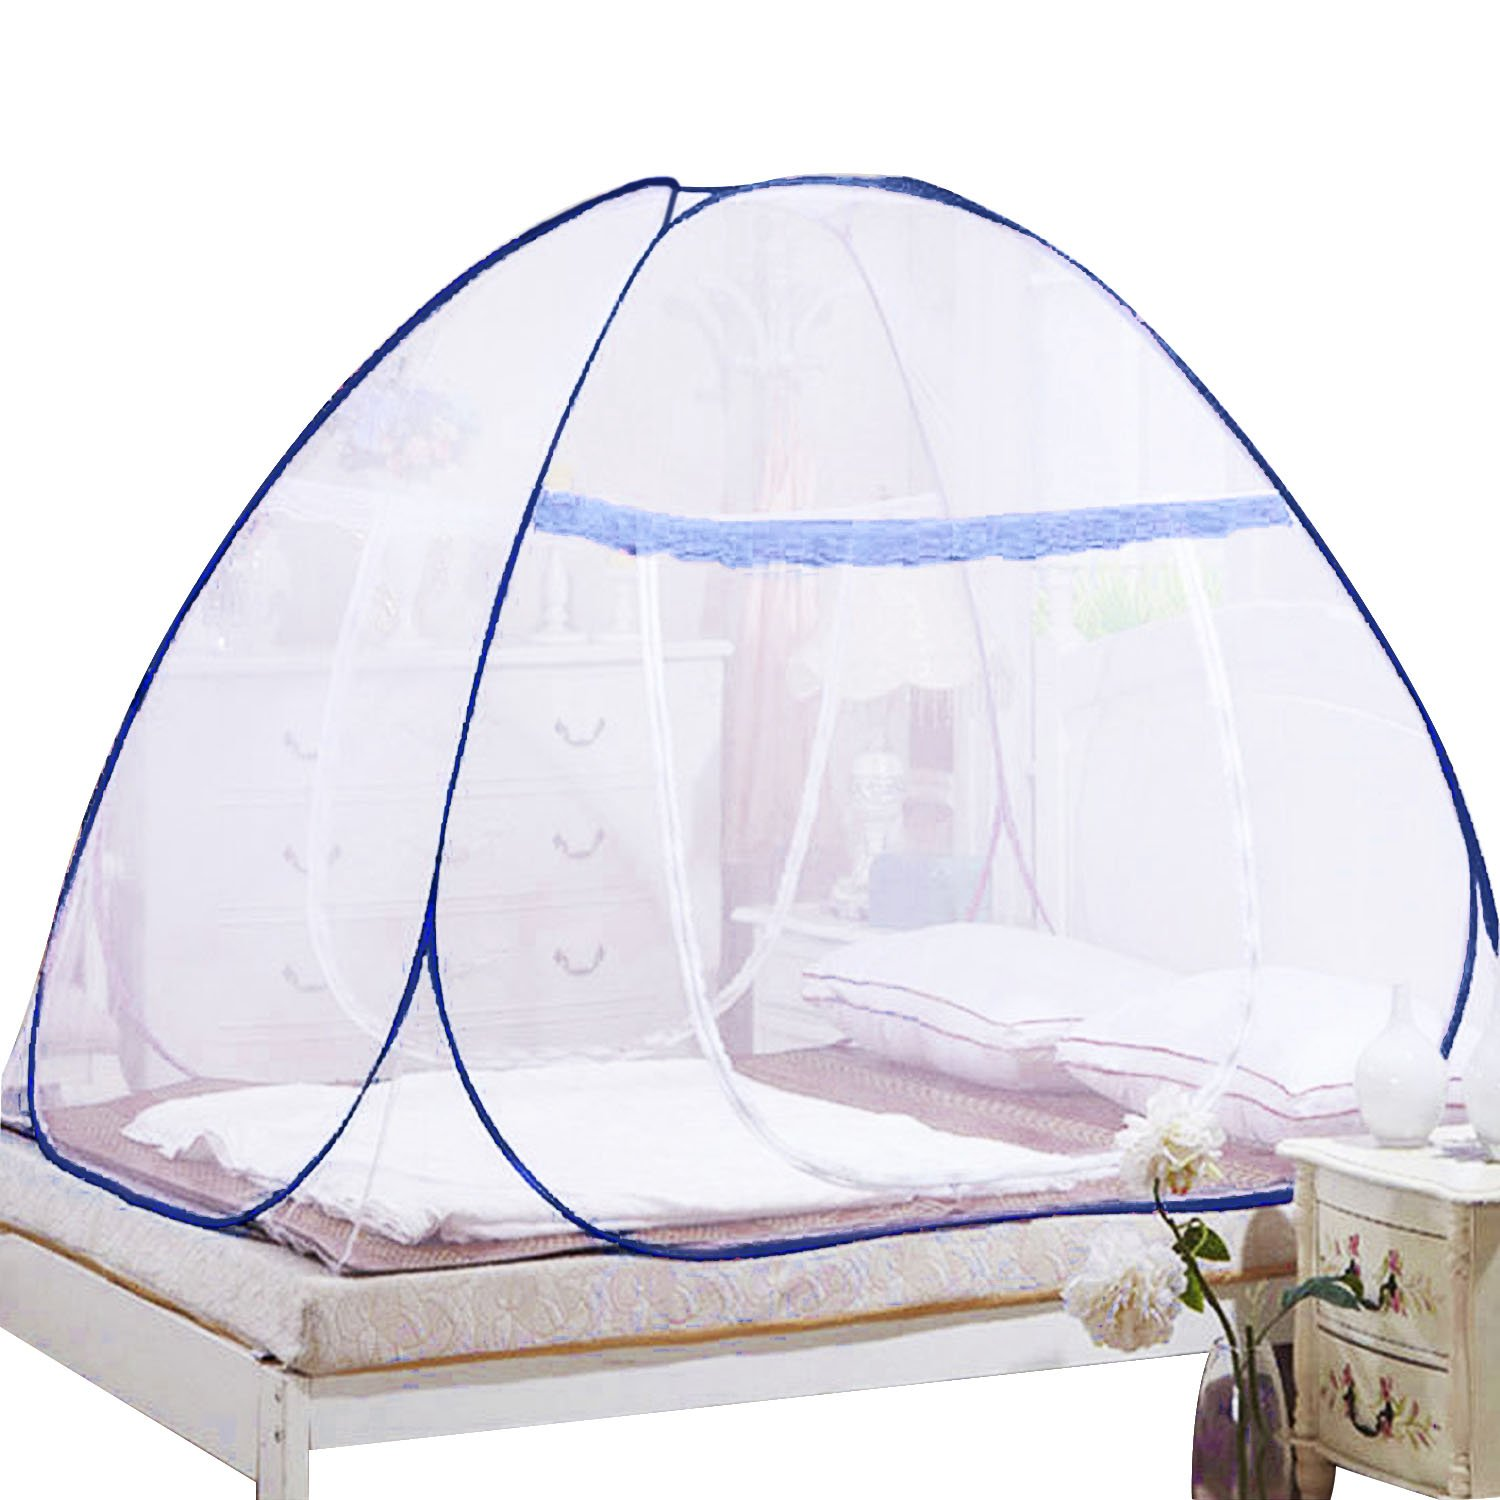 Gosear Spacious Folding Mosquito Net Bed Guard Tent Easy Pop Up Mosquito Net with Attached Bottom Dual Zipper Doors for Babies Toddlers Kids Adult Home Travel Outdoors 71 x 79 x 59inch